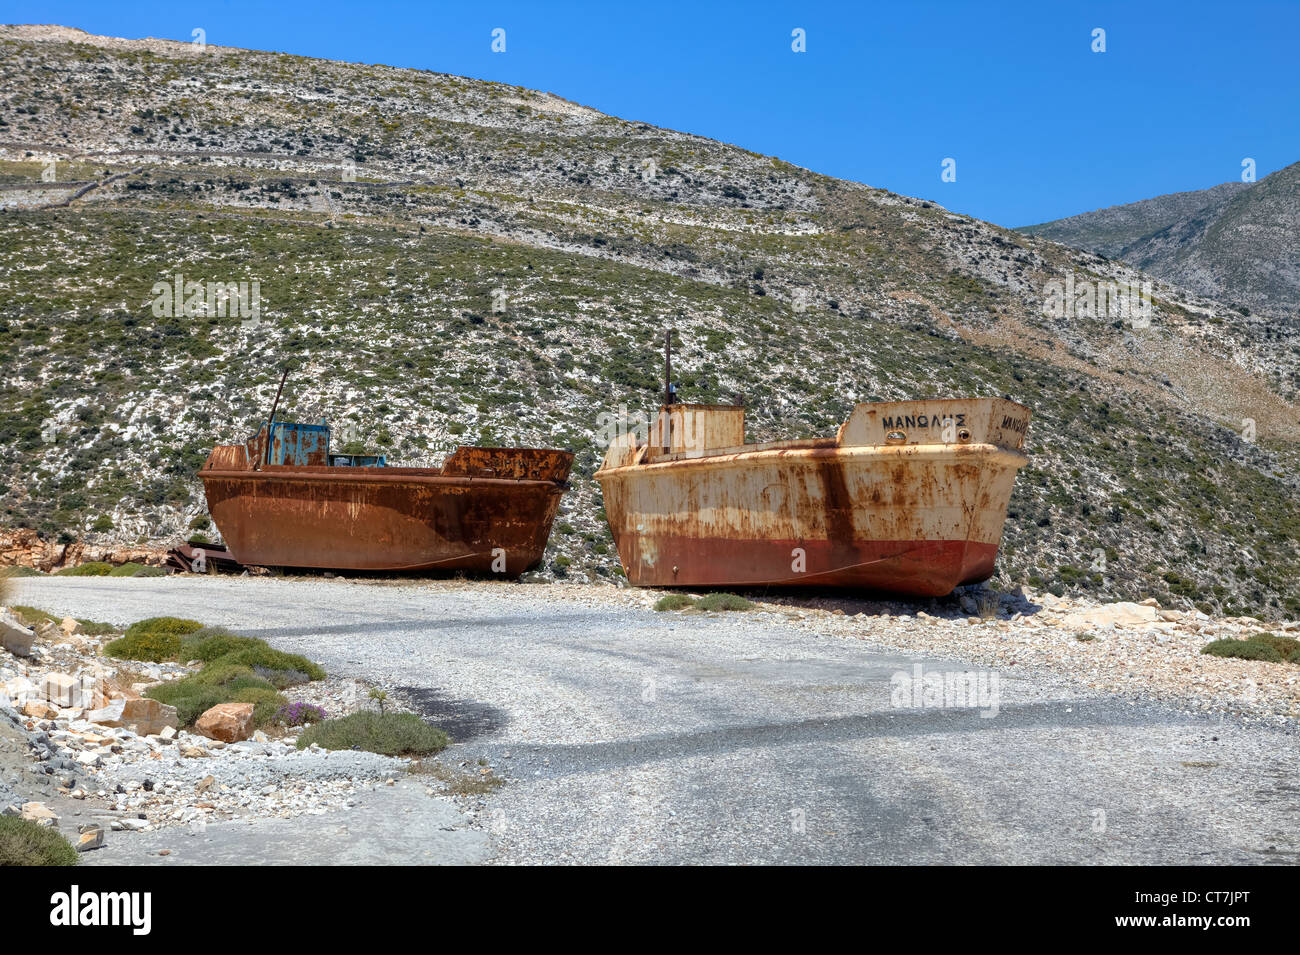 former cargo ships for the emery extraction at Moutsouna, Naxos, Greece - Stock Image